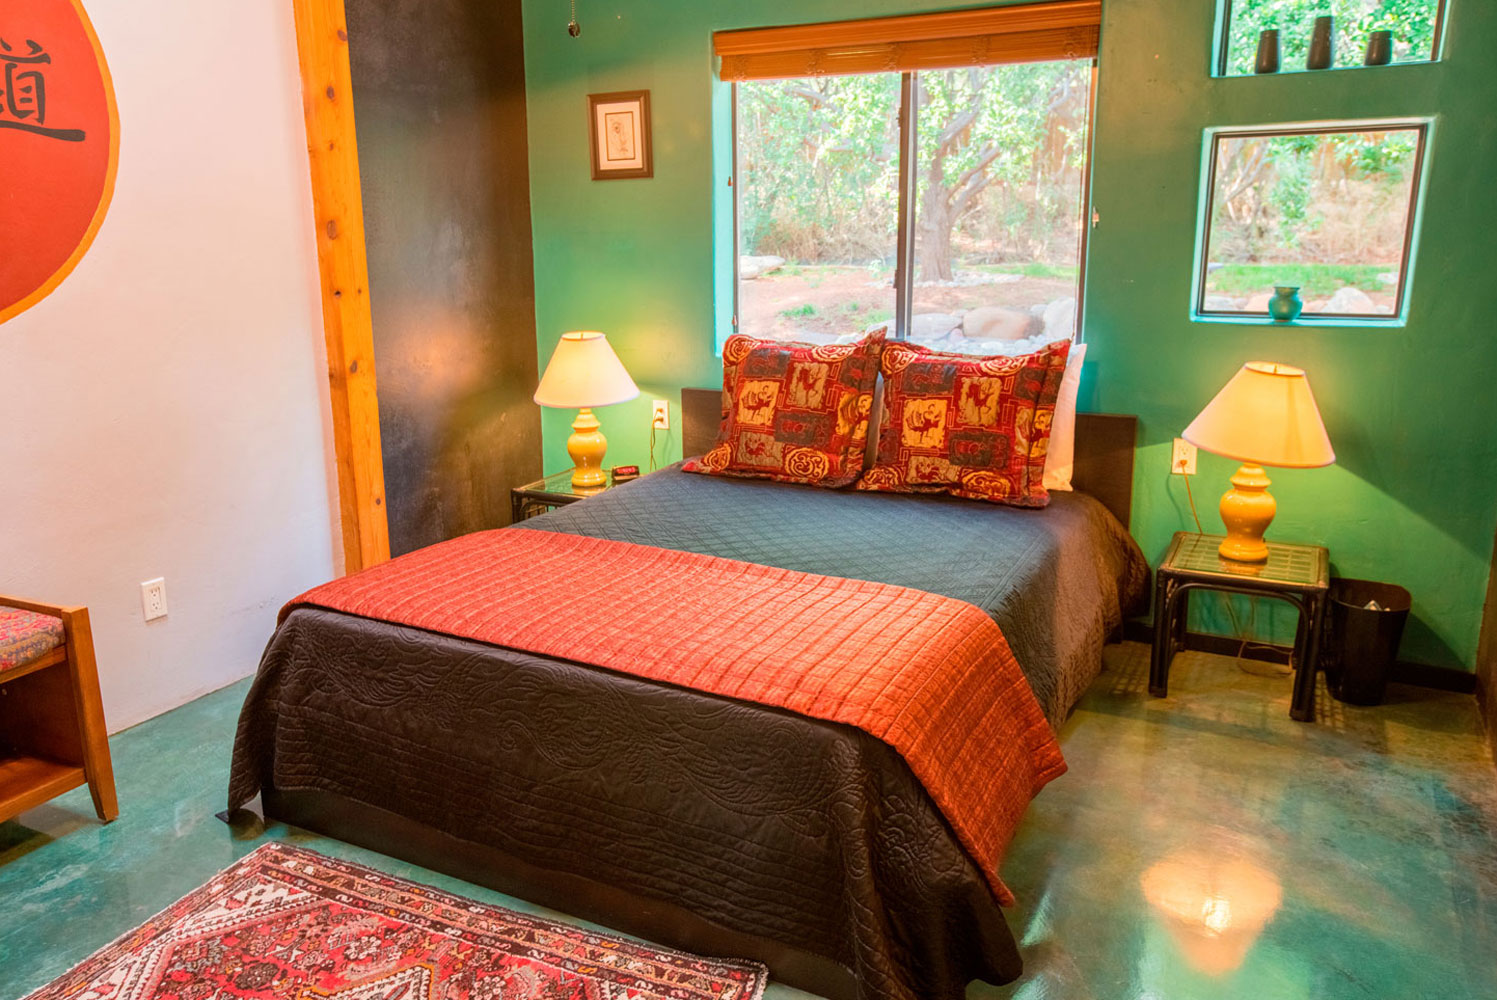 Yang Room - Queen Bed, Shared BathroomSingle OccupancyEarly Bird: $1750After June 30th: $1925(SOLD)